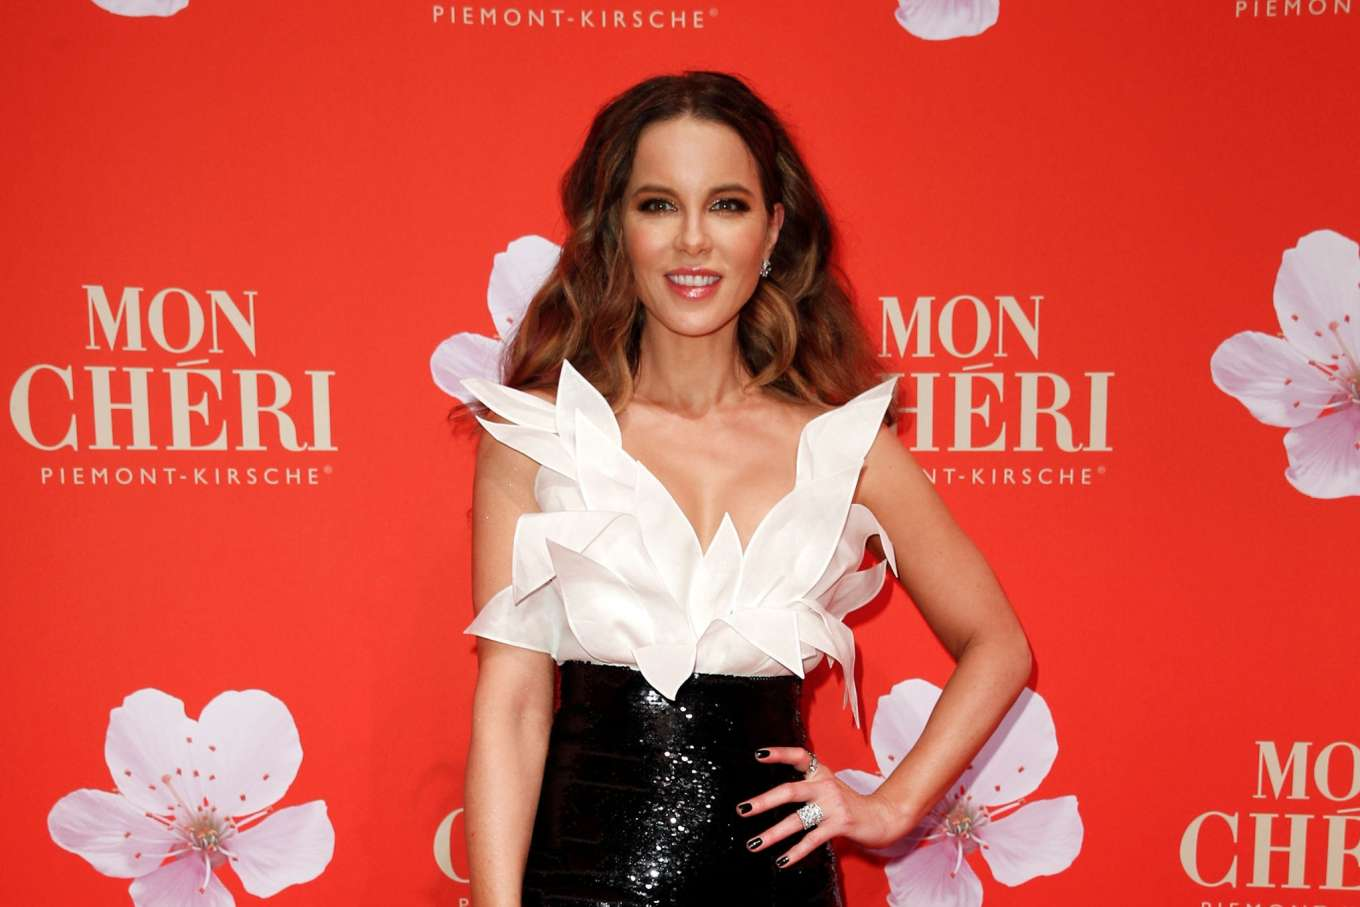 Kate Beckinsale arrives at Munich ball clad in glamorous cleavage baring gown with thigh high split